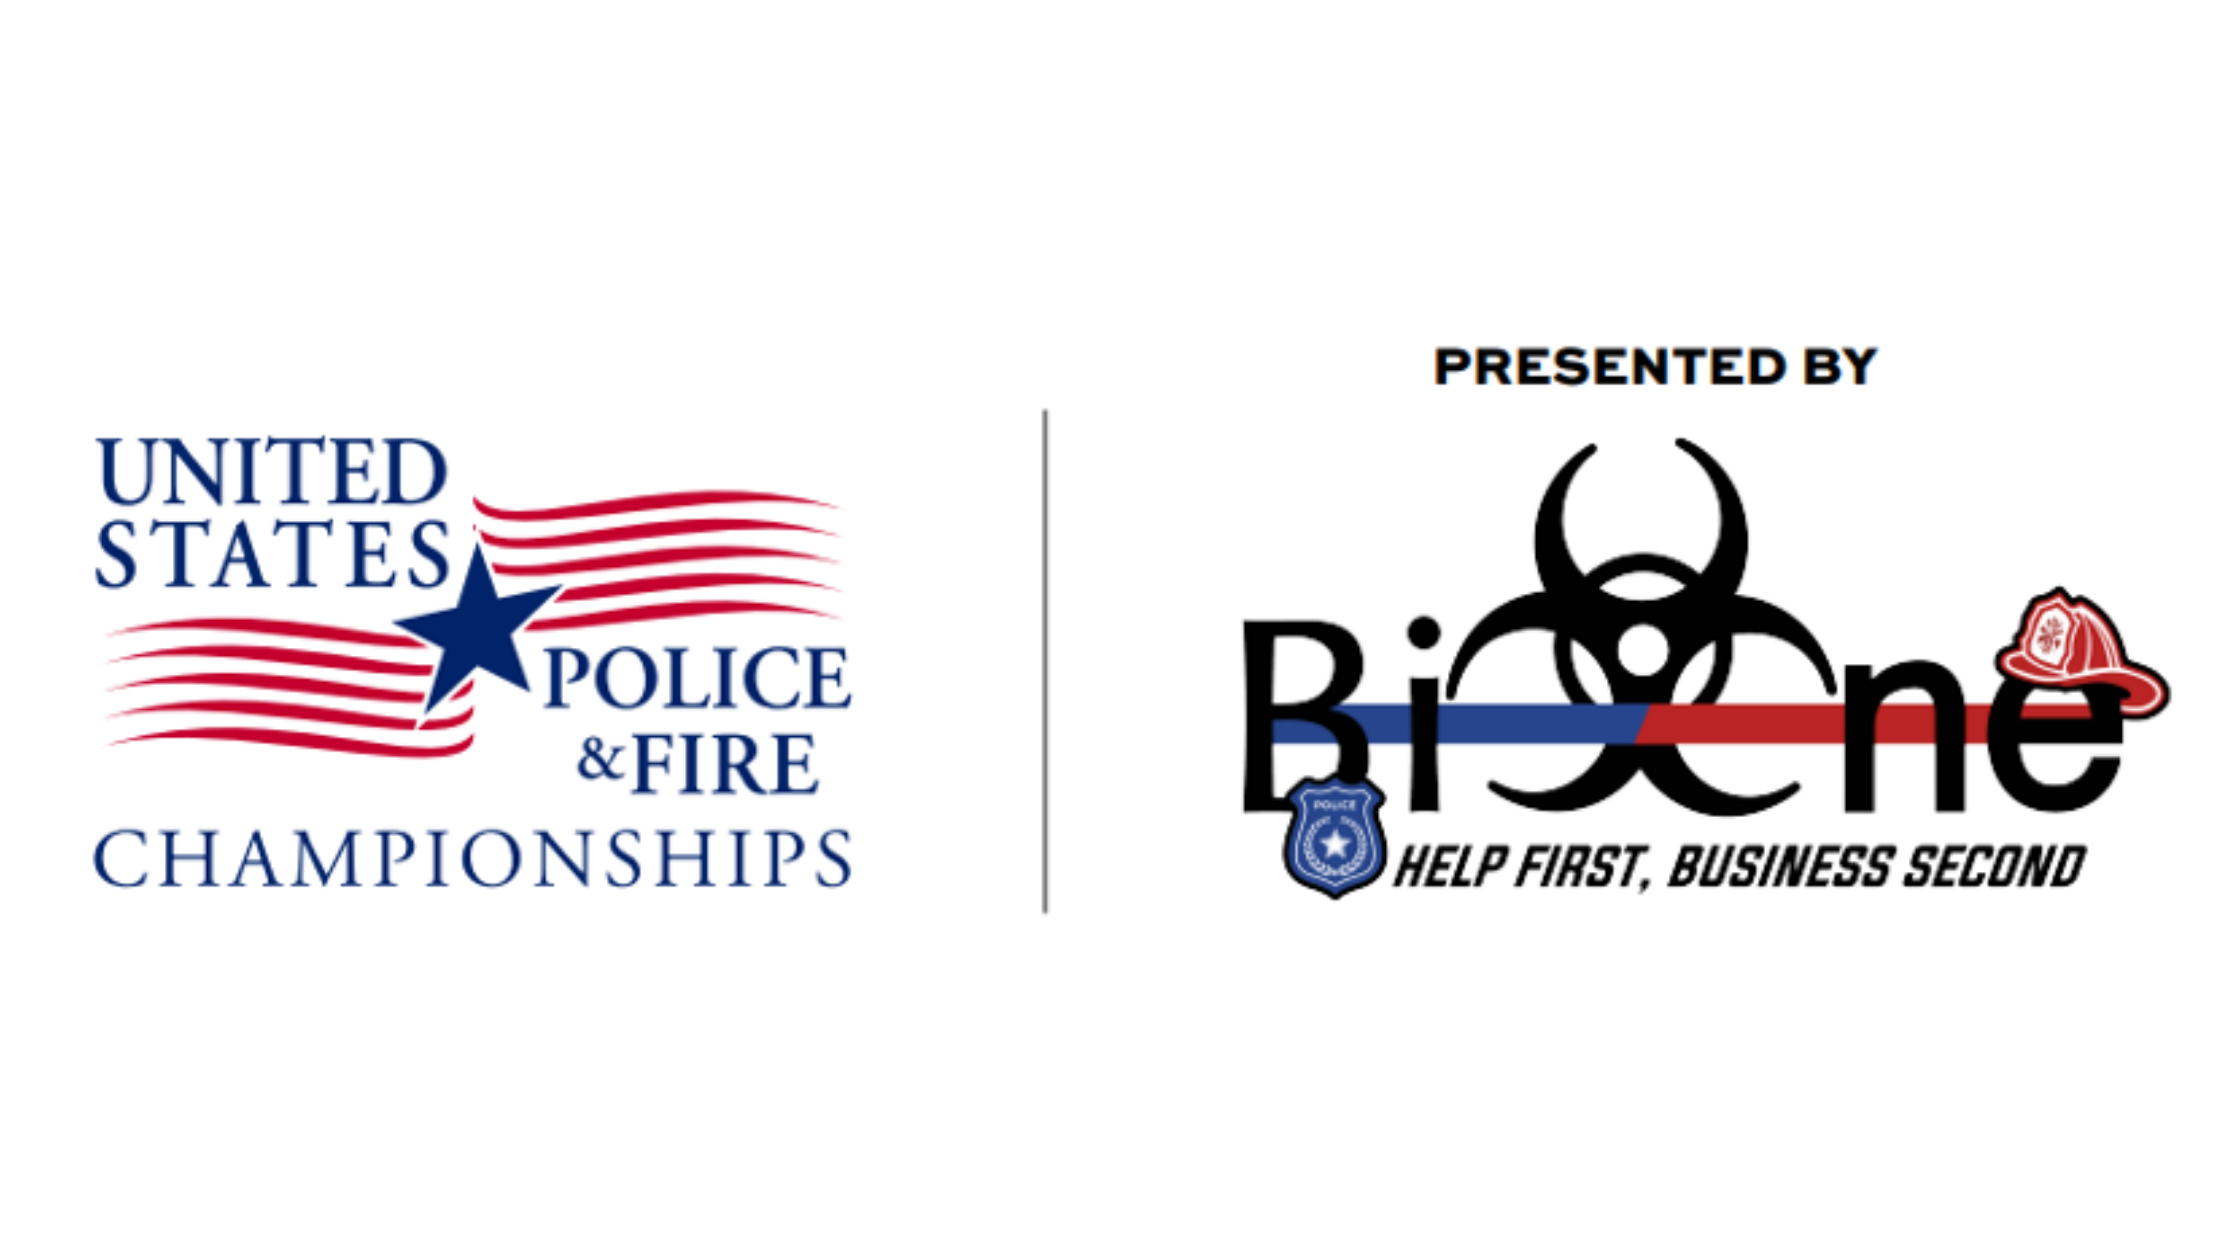 U.S. Police & Fire Championships Announces Presenting Sponsor: Bio-One, Inc.